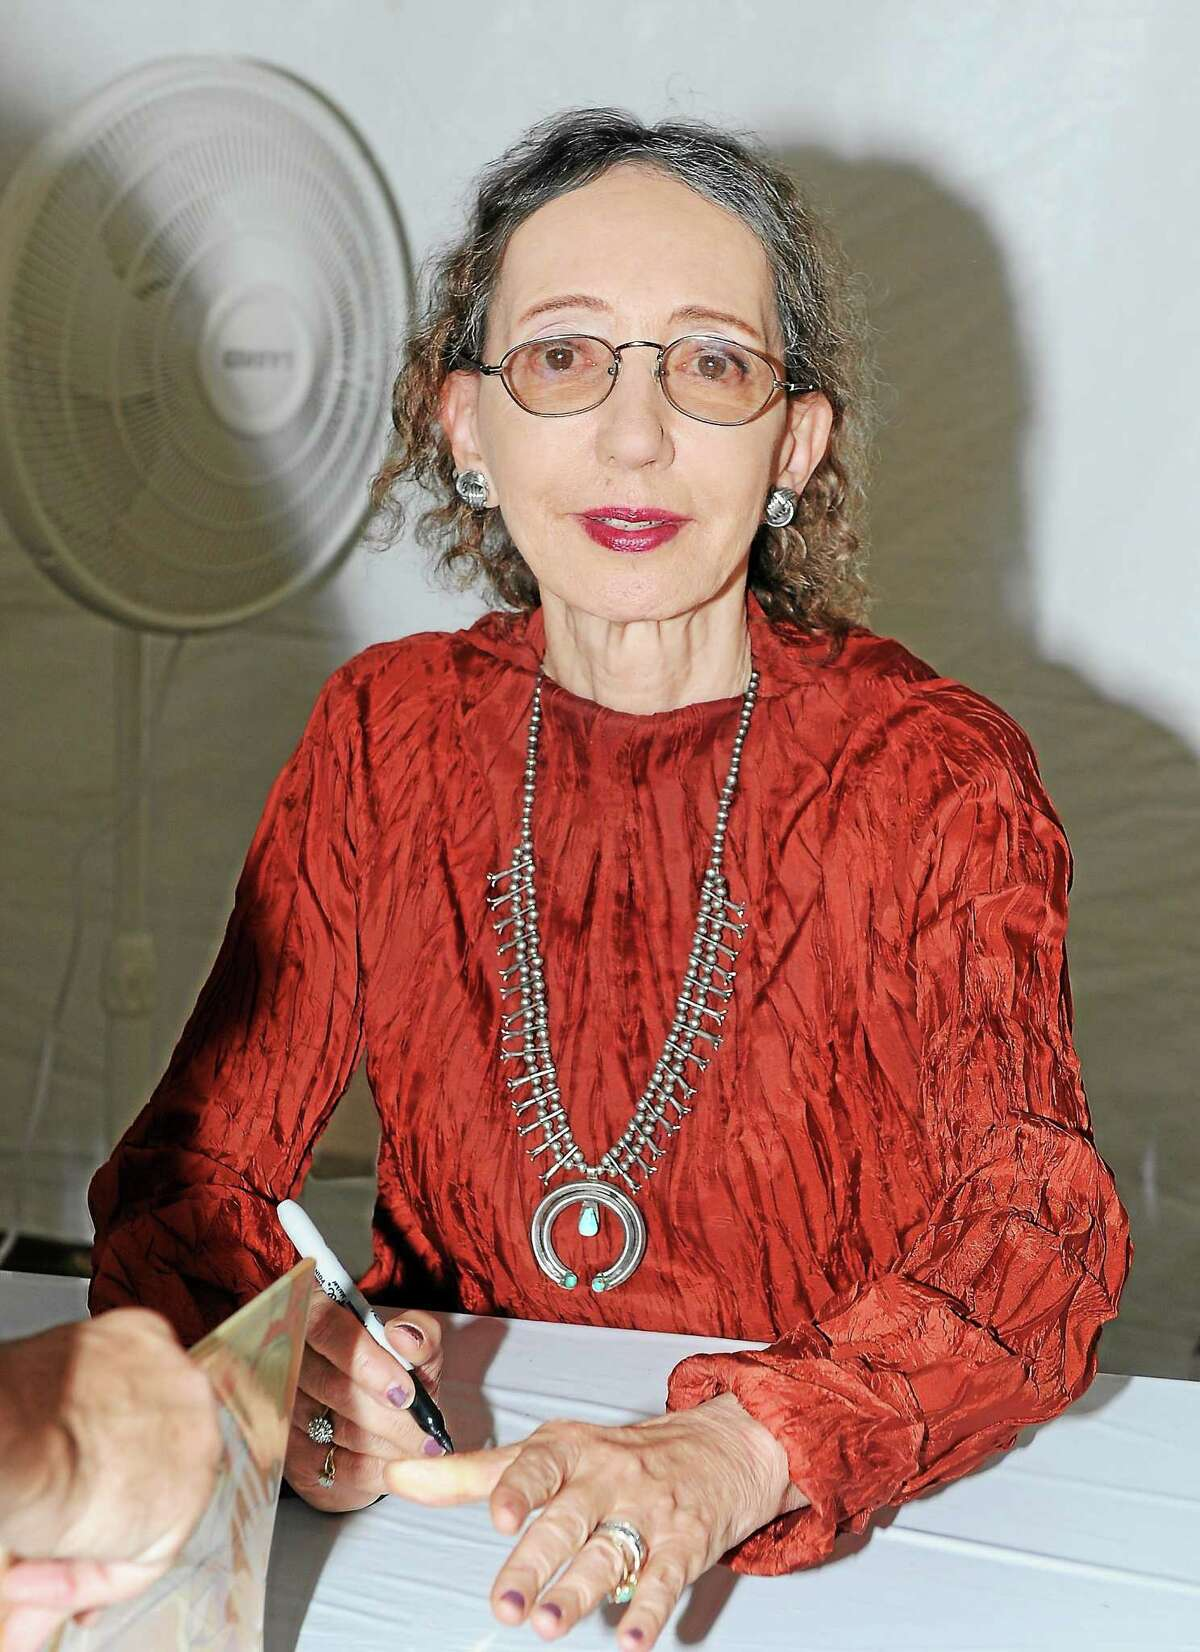 Joyce Carol Oates at the 2013 LA Times Festival of Books at the University of Southern California campus on Saturday April 21, 2013, in Los Angeles. (Photo by Katy Winn/Invision/AP)